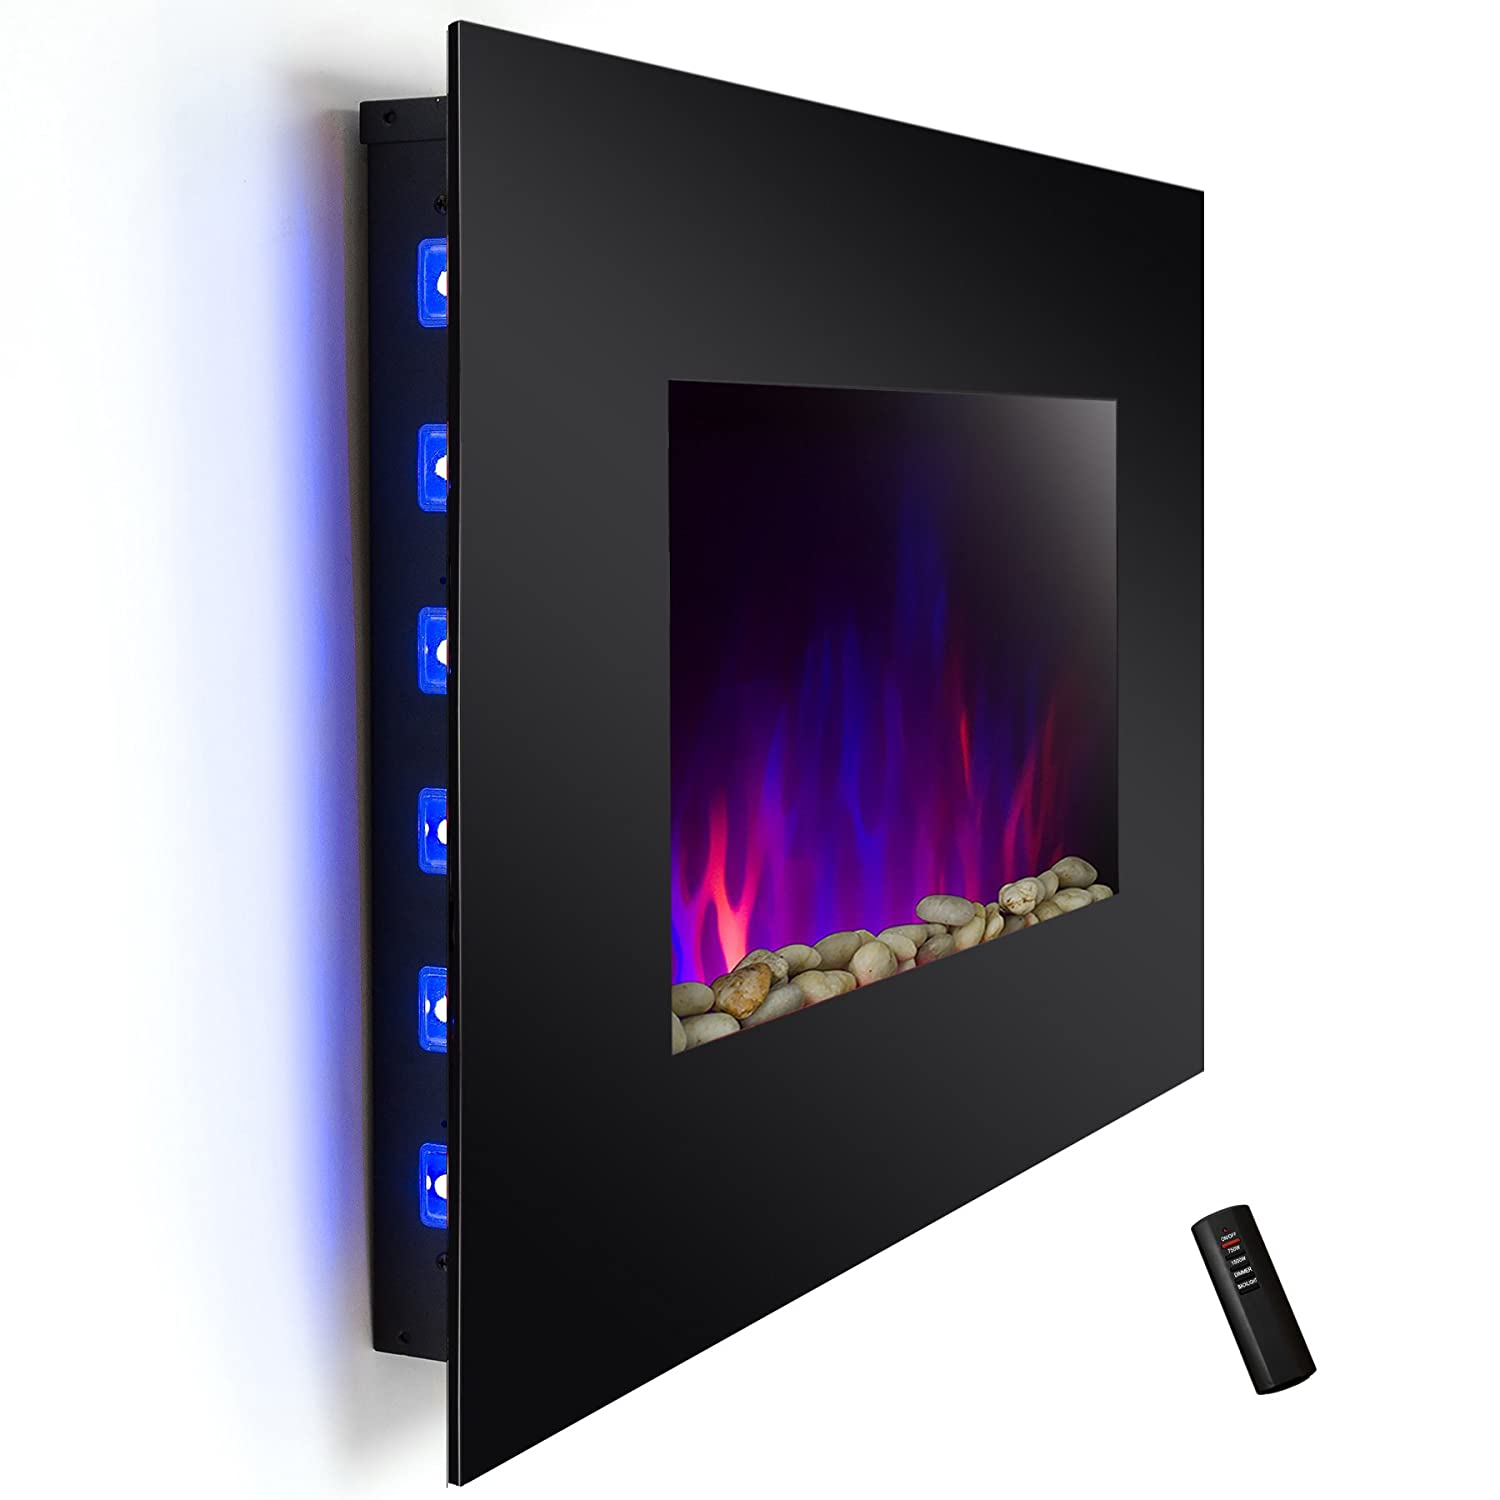 Buy AKDY 36 inch Wall Mount Electric Fireplace Space Heater With Pebble & Log / Remote: Space Heaters - Amazon.com ? FREE DELIVERY possible on eligible purchases